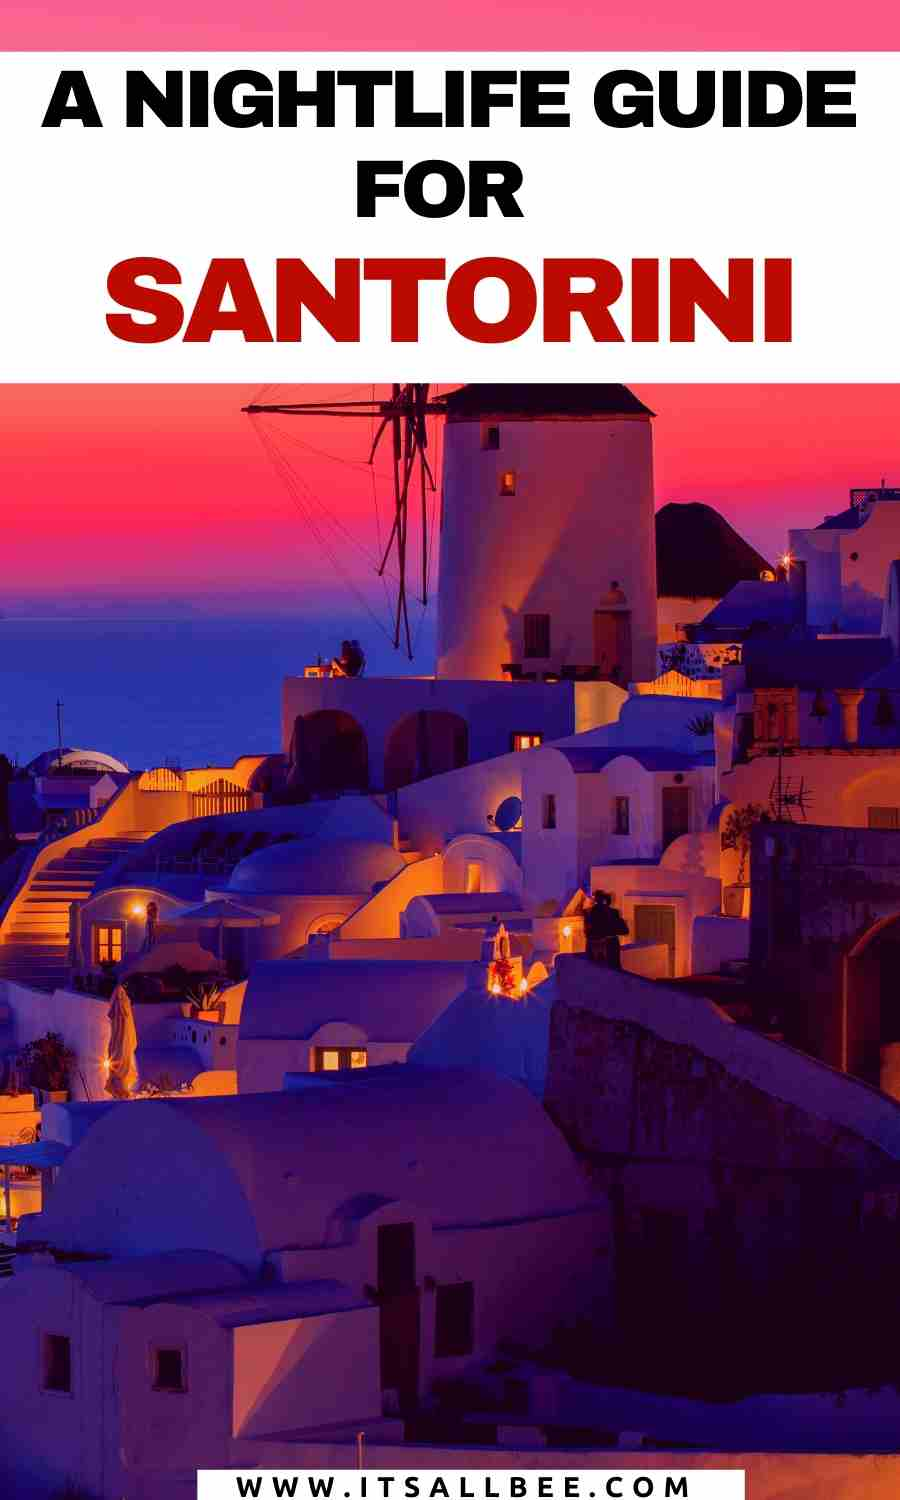 santorini nightclubs | things to do in santorini at night | nightlife